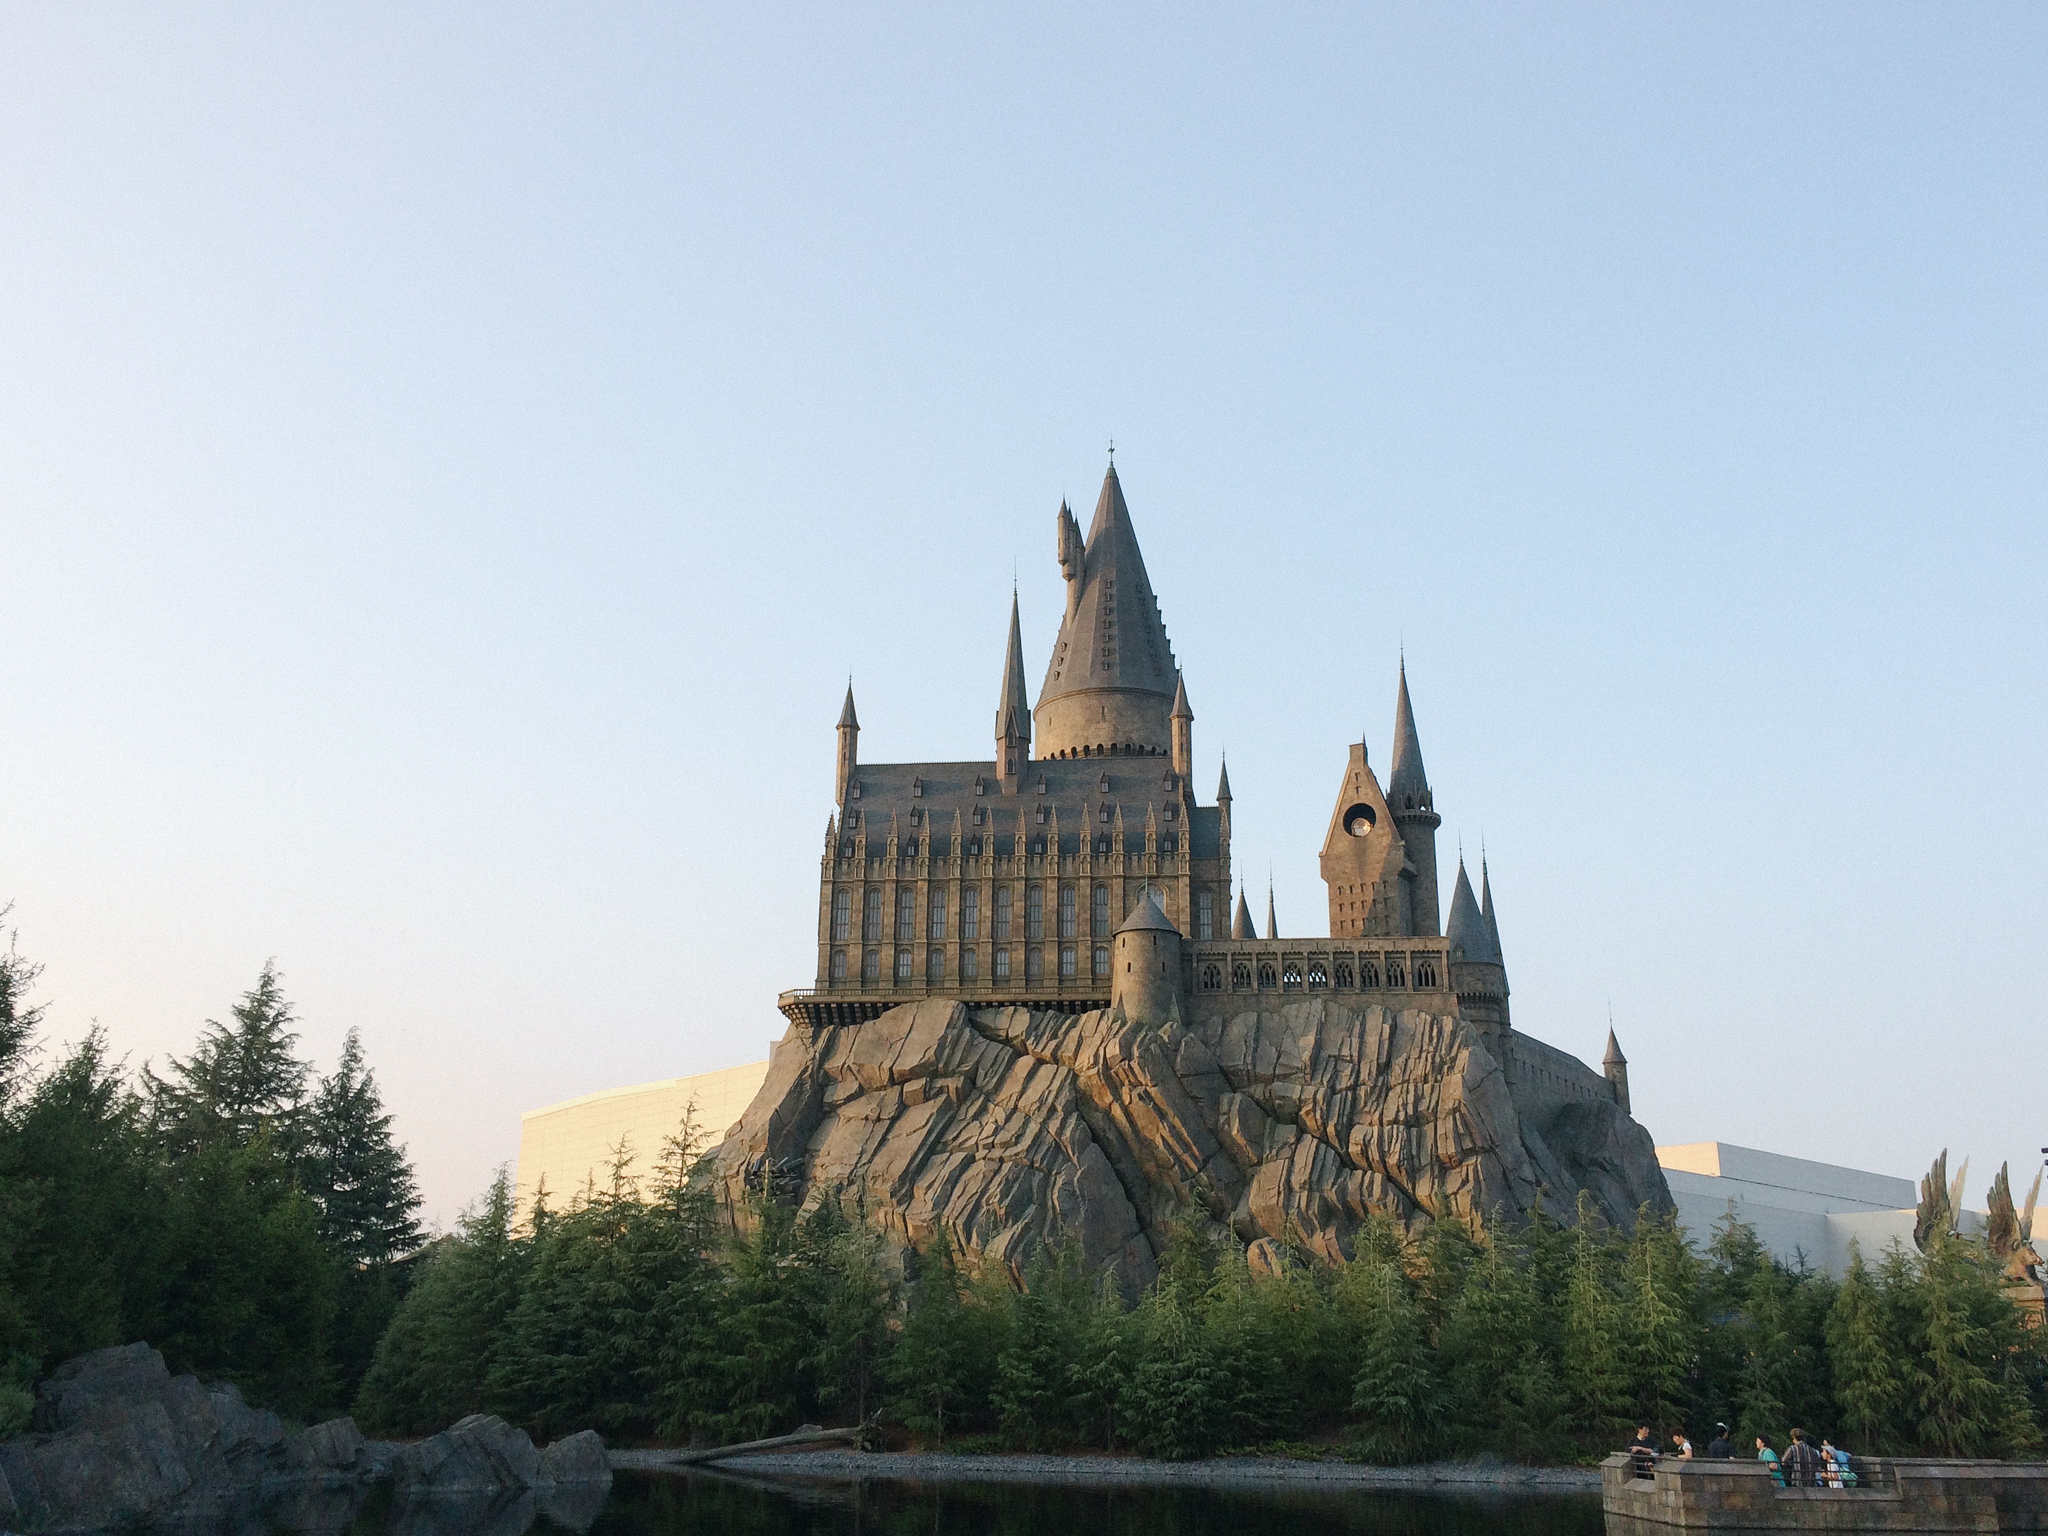 TCHAN! Hogwarts! This was absolutely amazing.